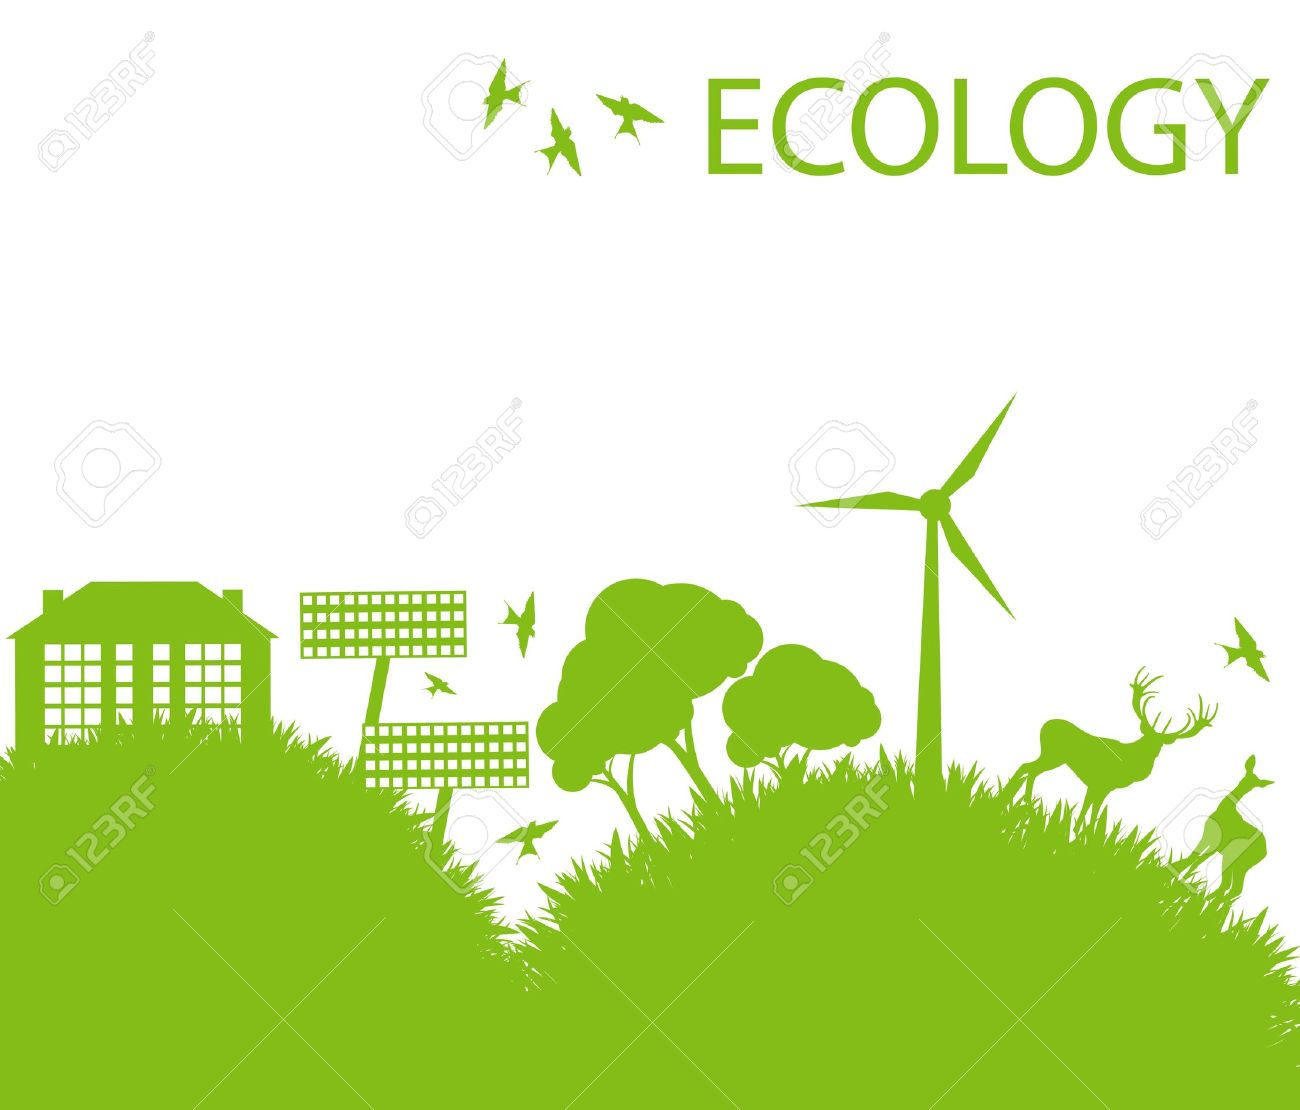 ecology projects